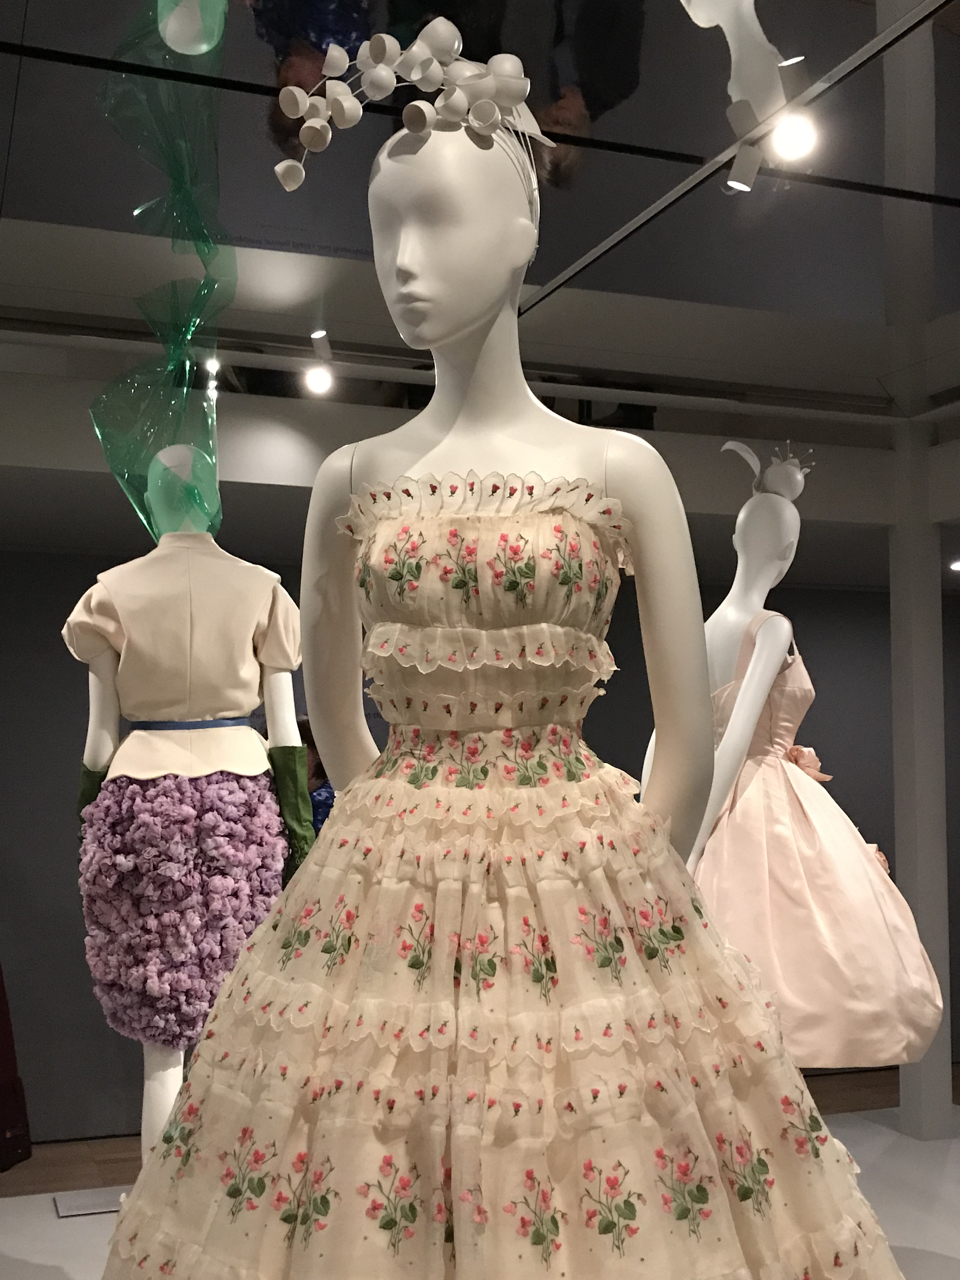 Australia and The House of Dior 70 years on - Image Confidence